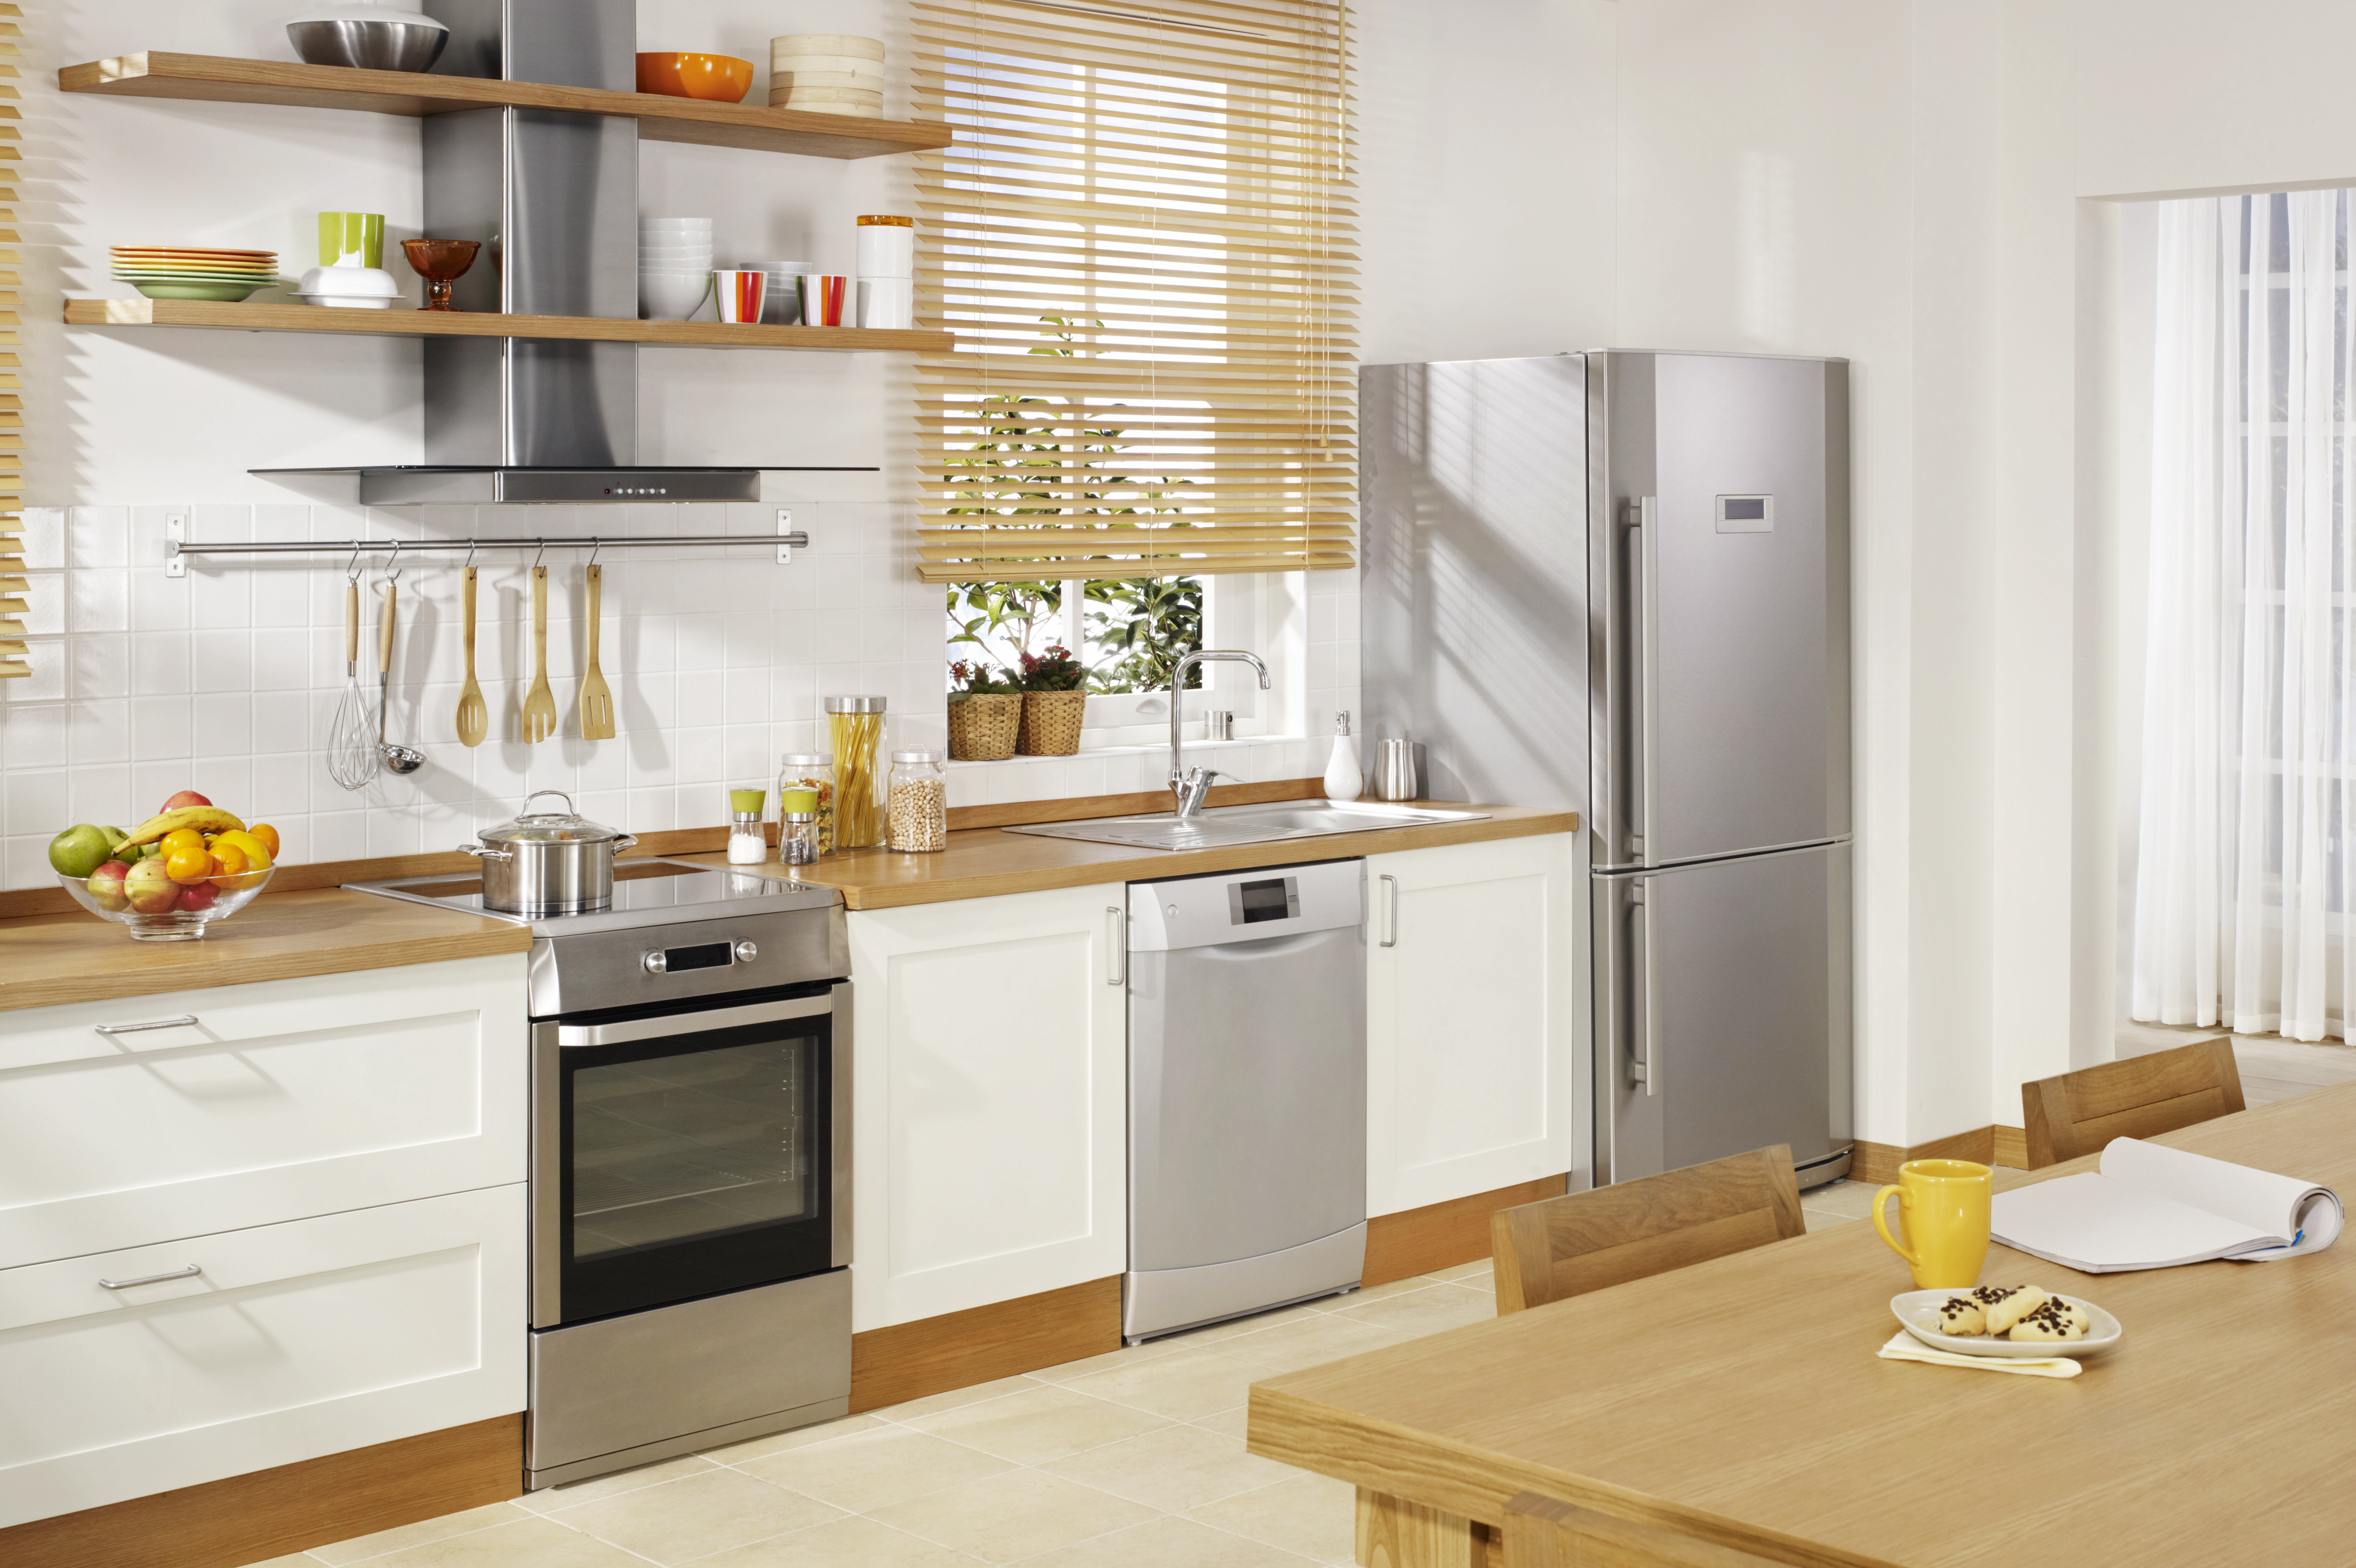 How To Install A Dishwasher In Old Kitchen Cabinets Home Guides